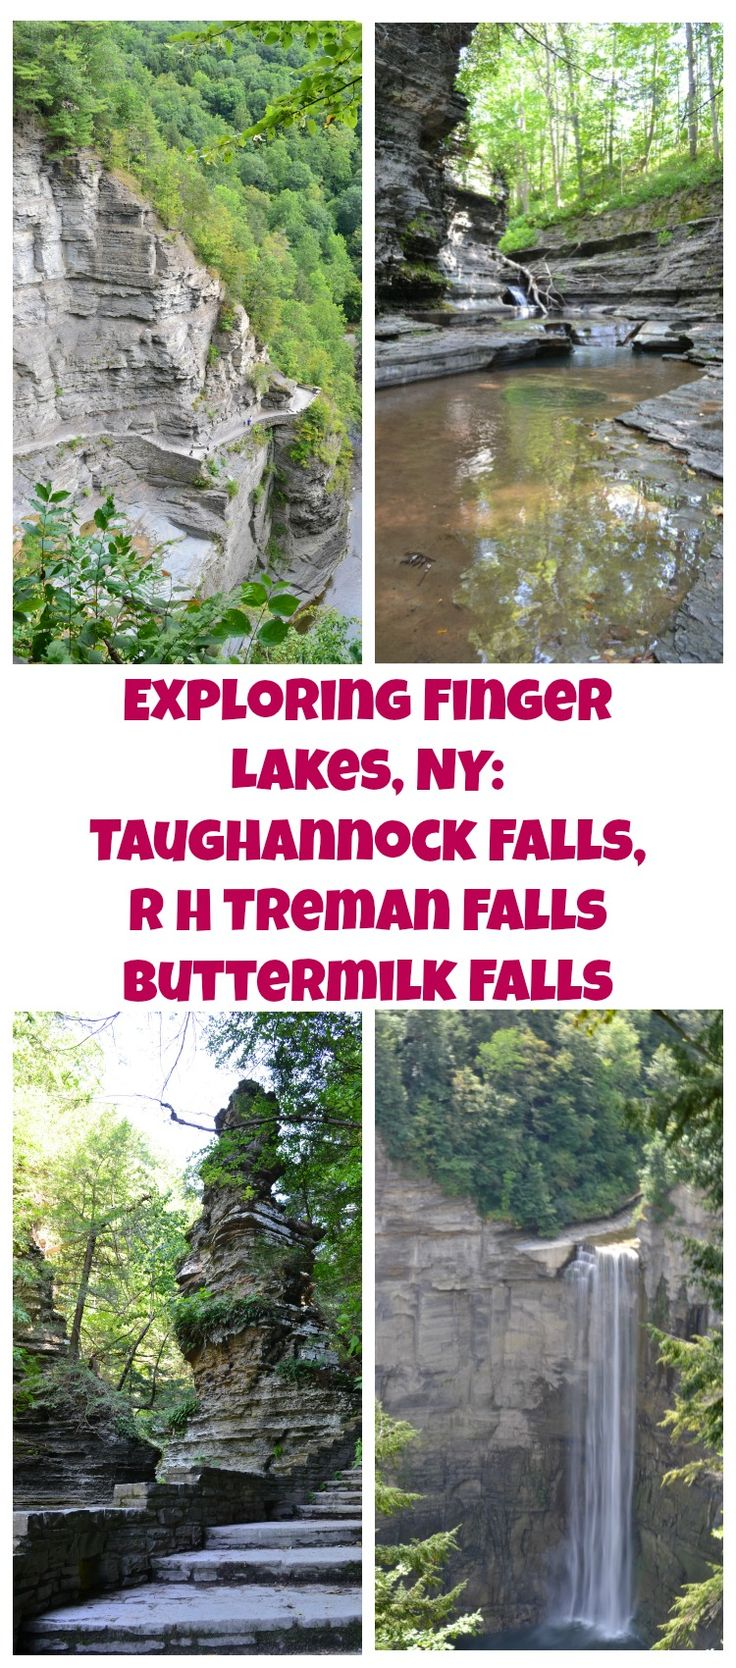 Exploring Finger Lakes, NY: Taughannock Falls State Park, Robert Treman Falls State Park and Buttermilk Falls State Park. Places to visit and enjoy in Ithaca, New York